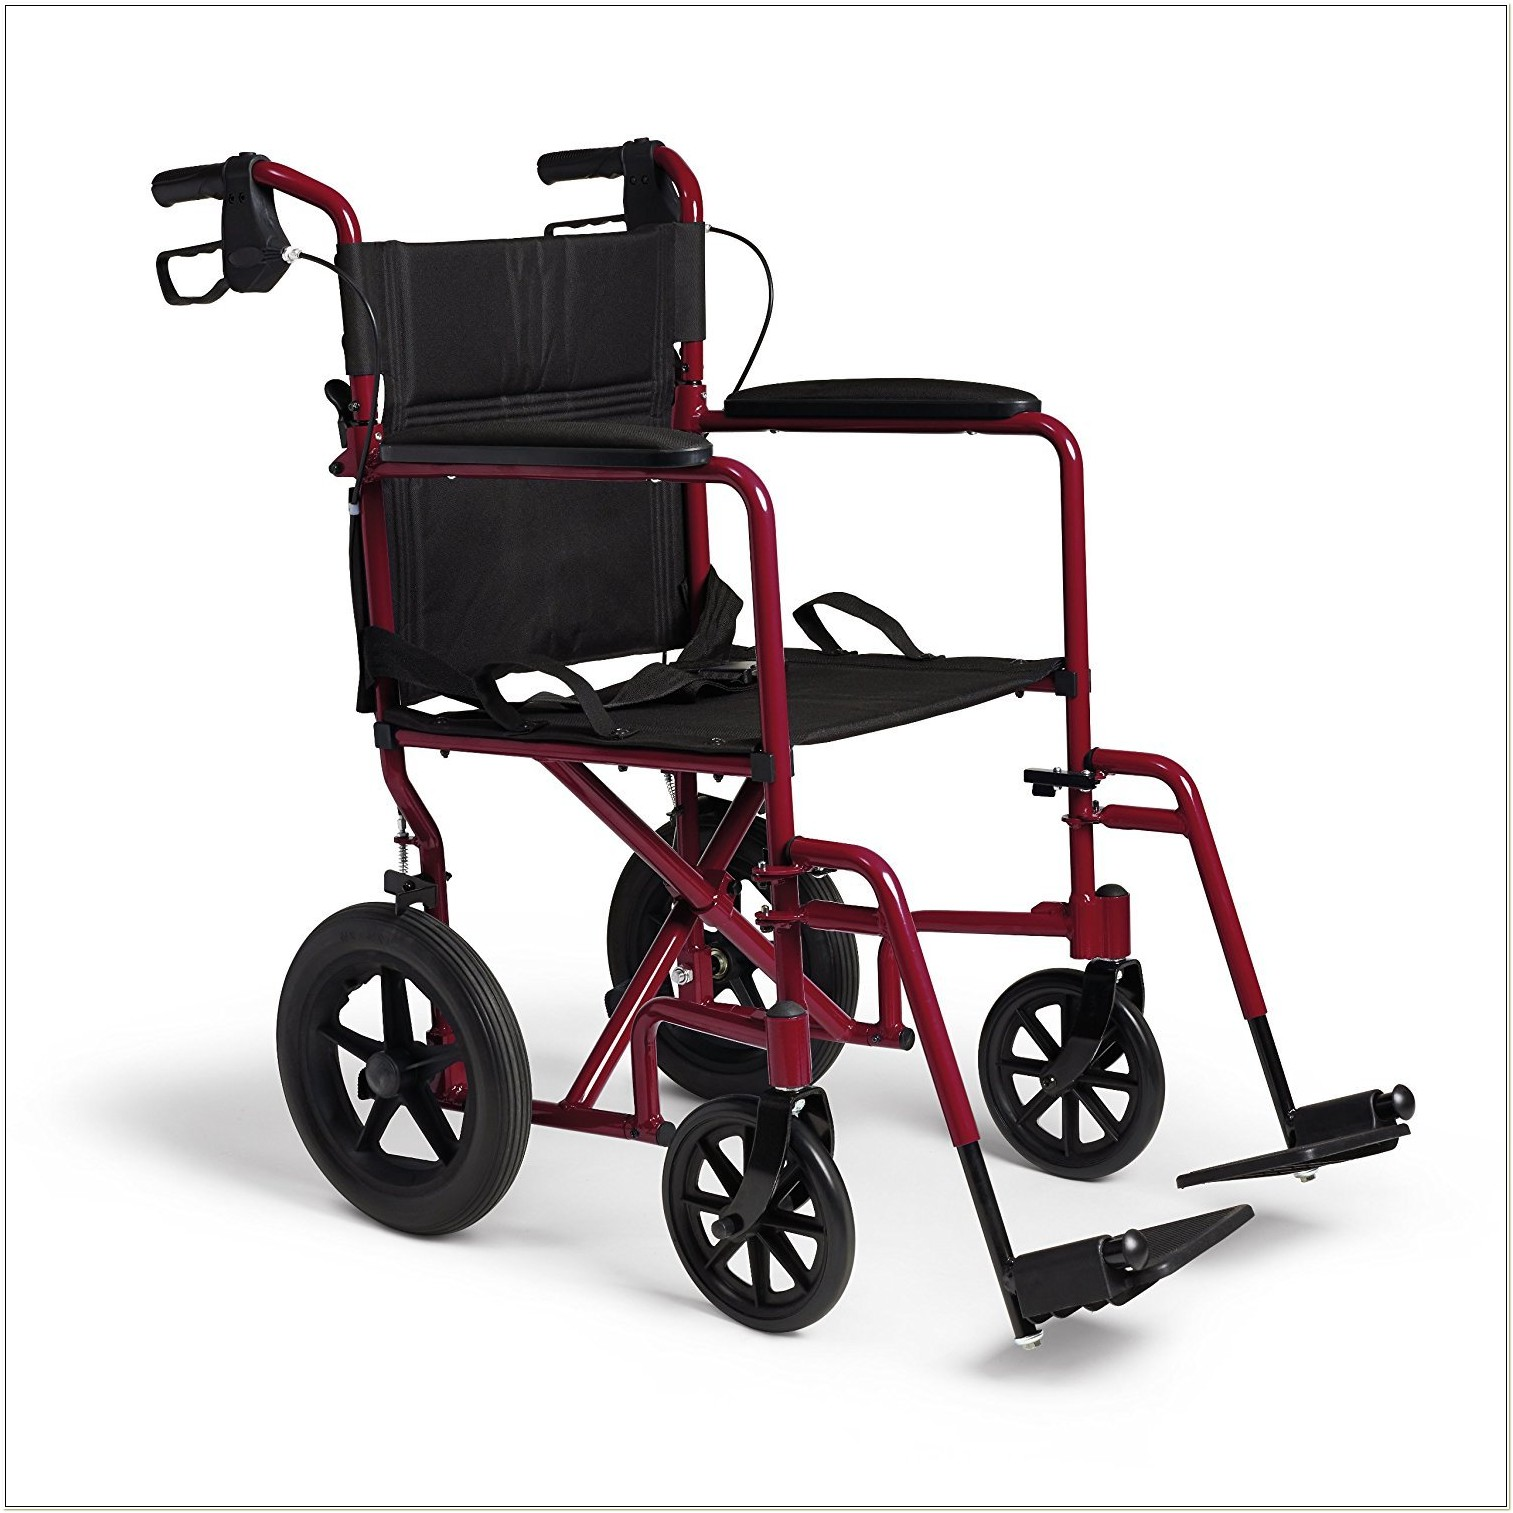 Invacare Lightweight Folding Transport Wheelchair